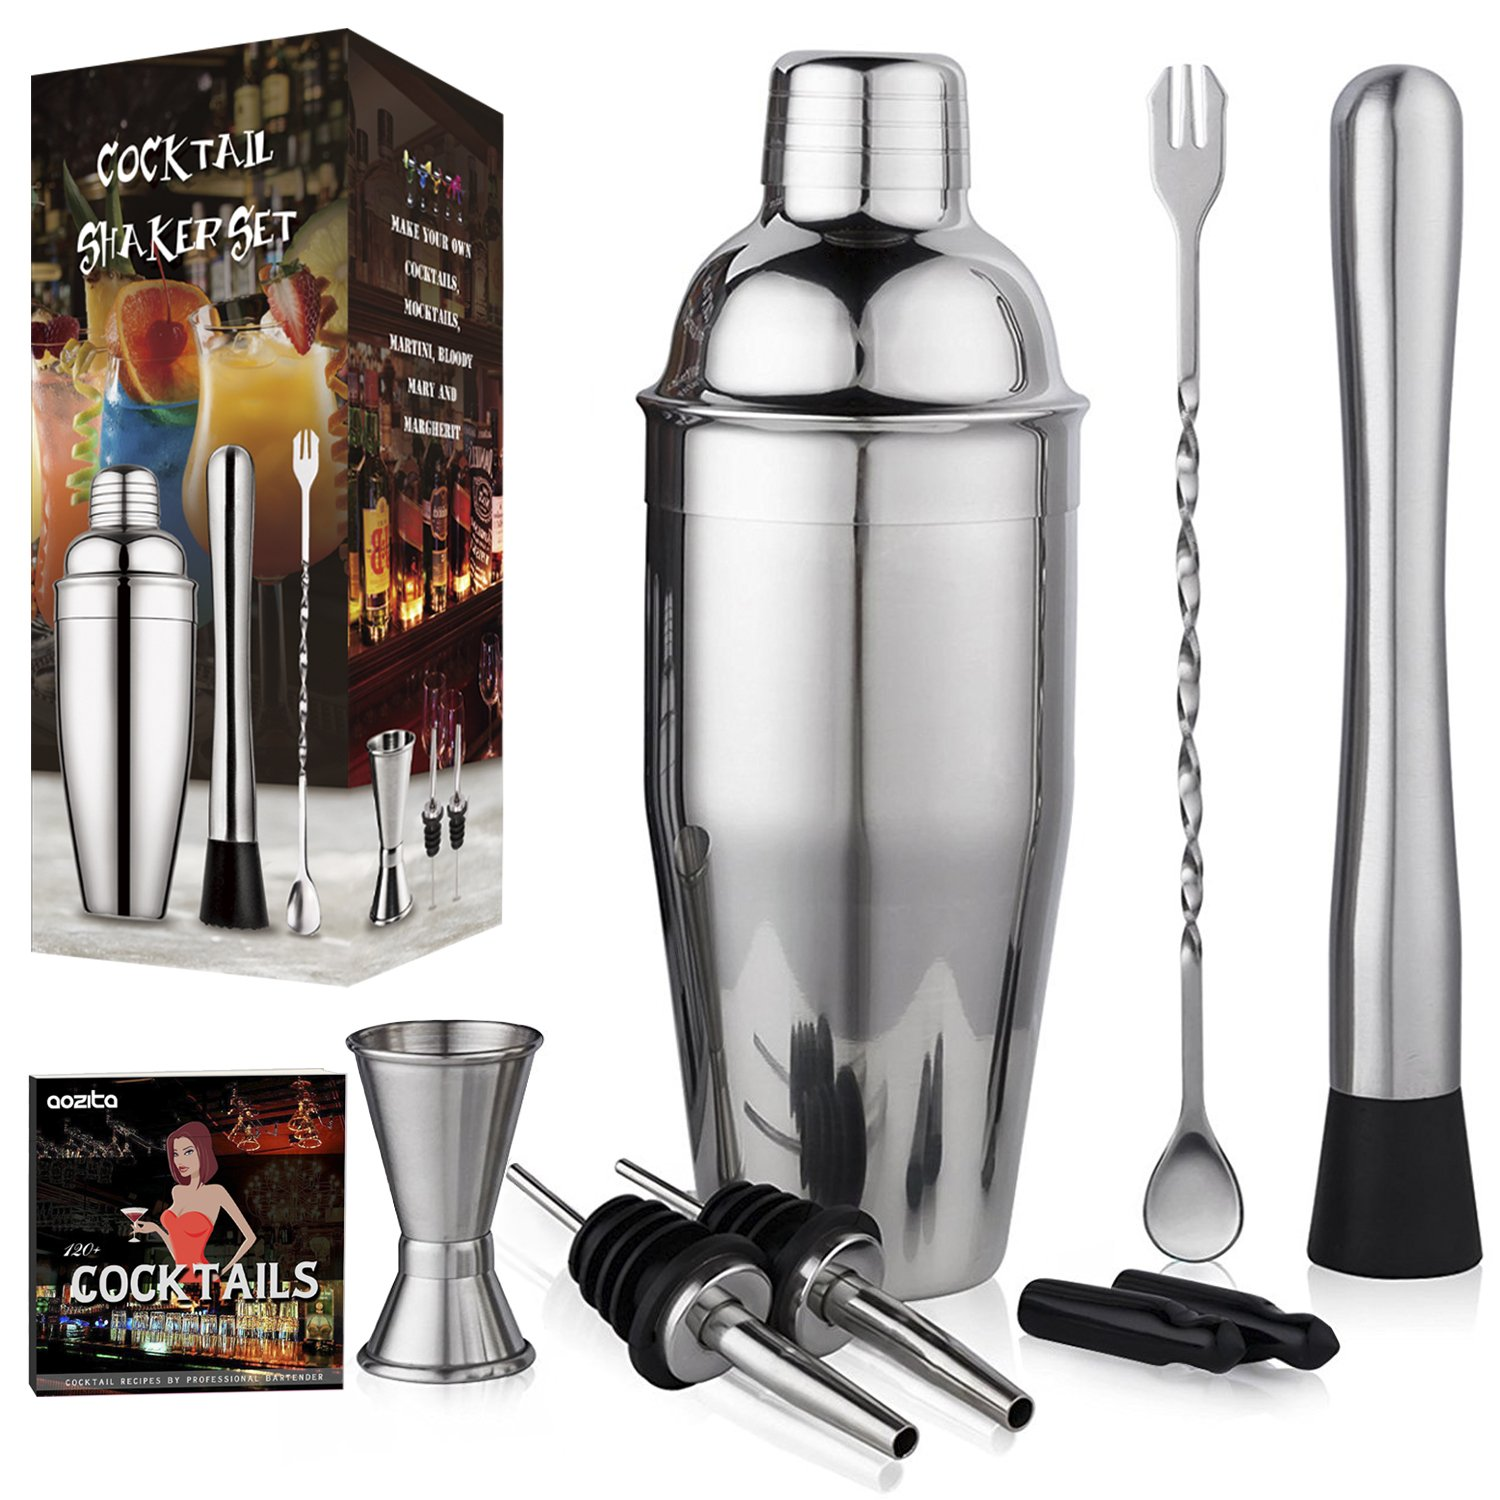 Aozita Cocktail Shaker Set Includes Martini Shaker, Mixing Spoon, Muddler, Measuring Jigger, Liquor Pourers with Dust Caps and Recipes Booklet- Professional Stainless Steel Bar Tools by Aozita